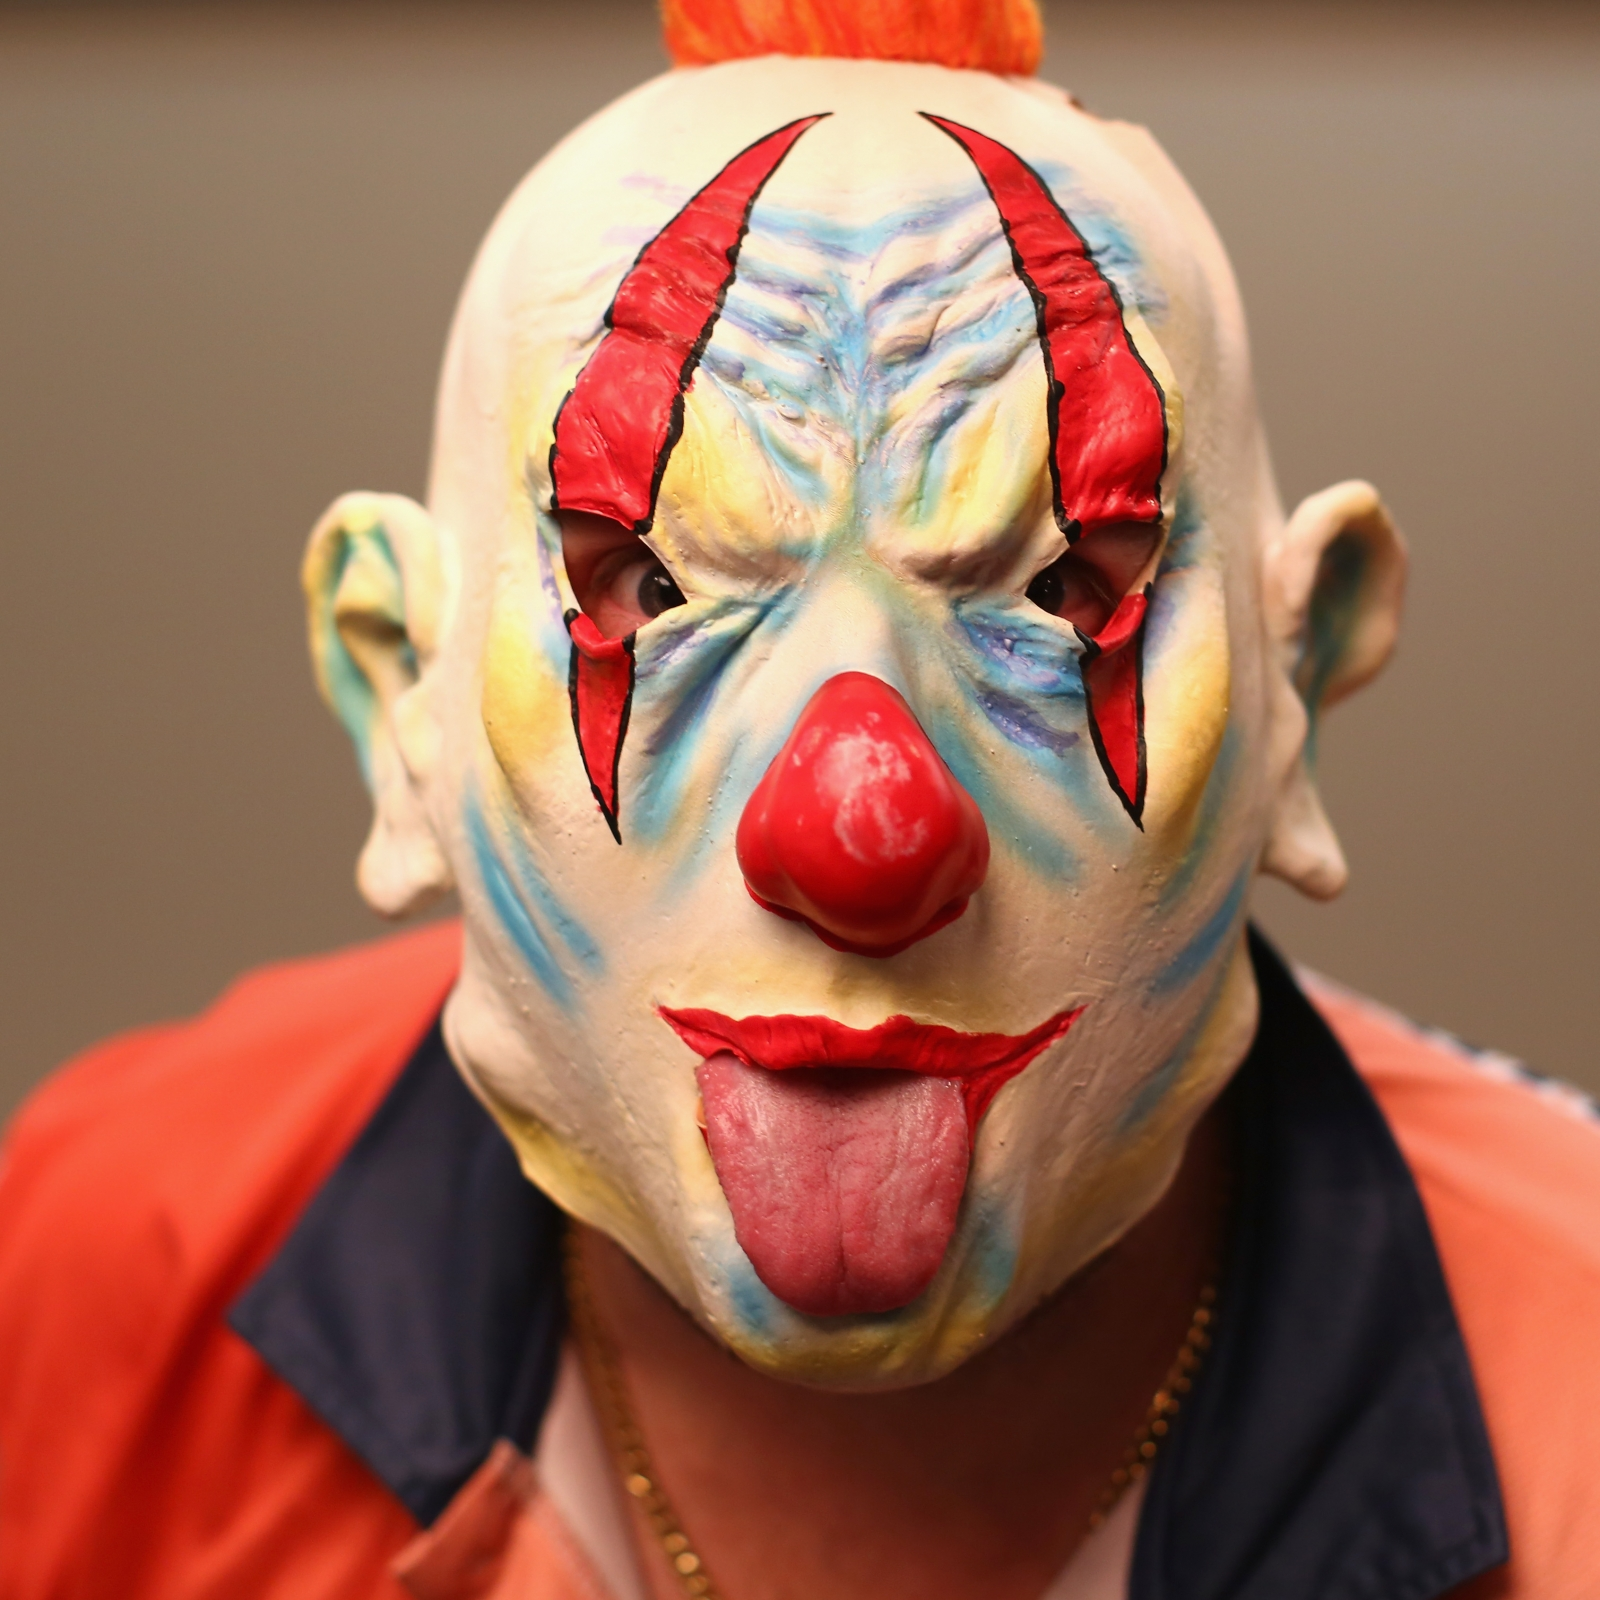 Evil Clown Craze: Gang of Teens Using Masks and Weapons ...